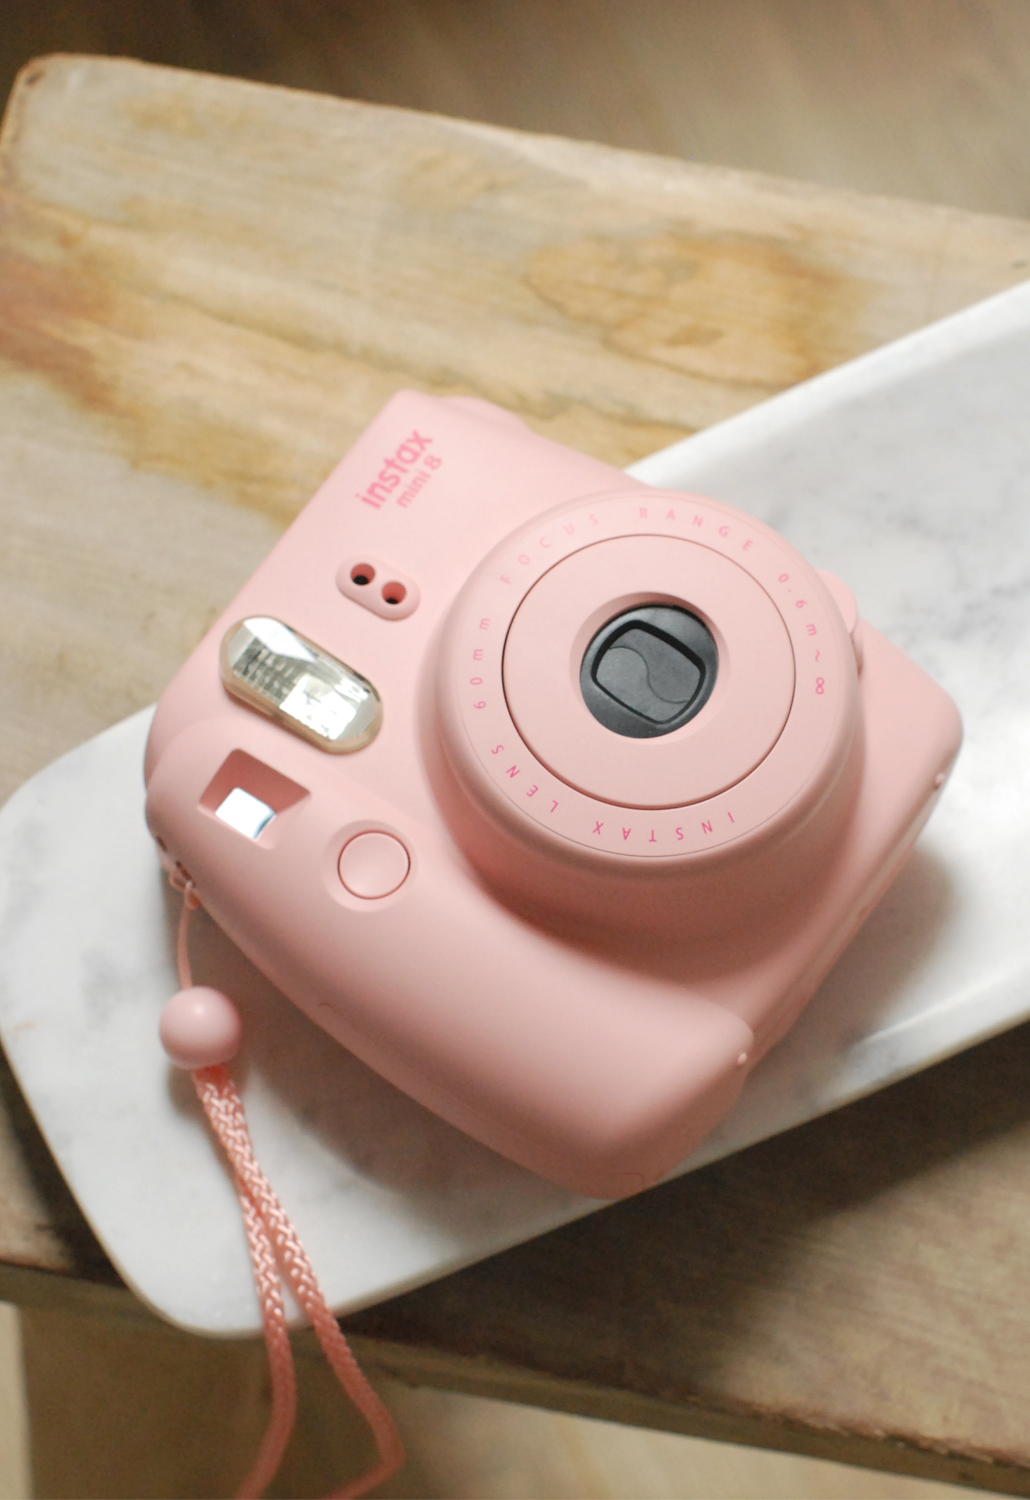 FujiFilm instax mini 8 instant camera pink lifestyle by linda